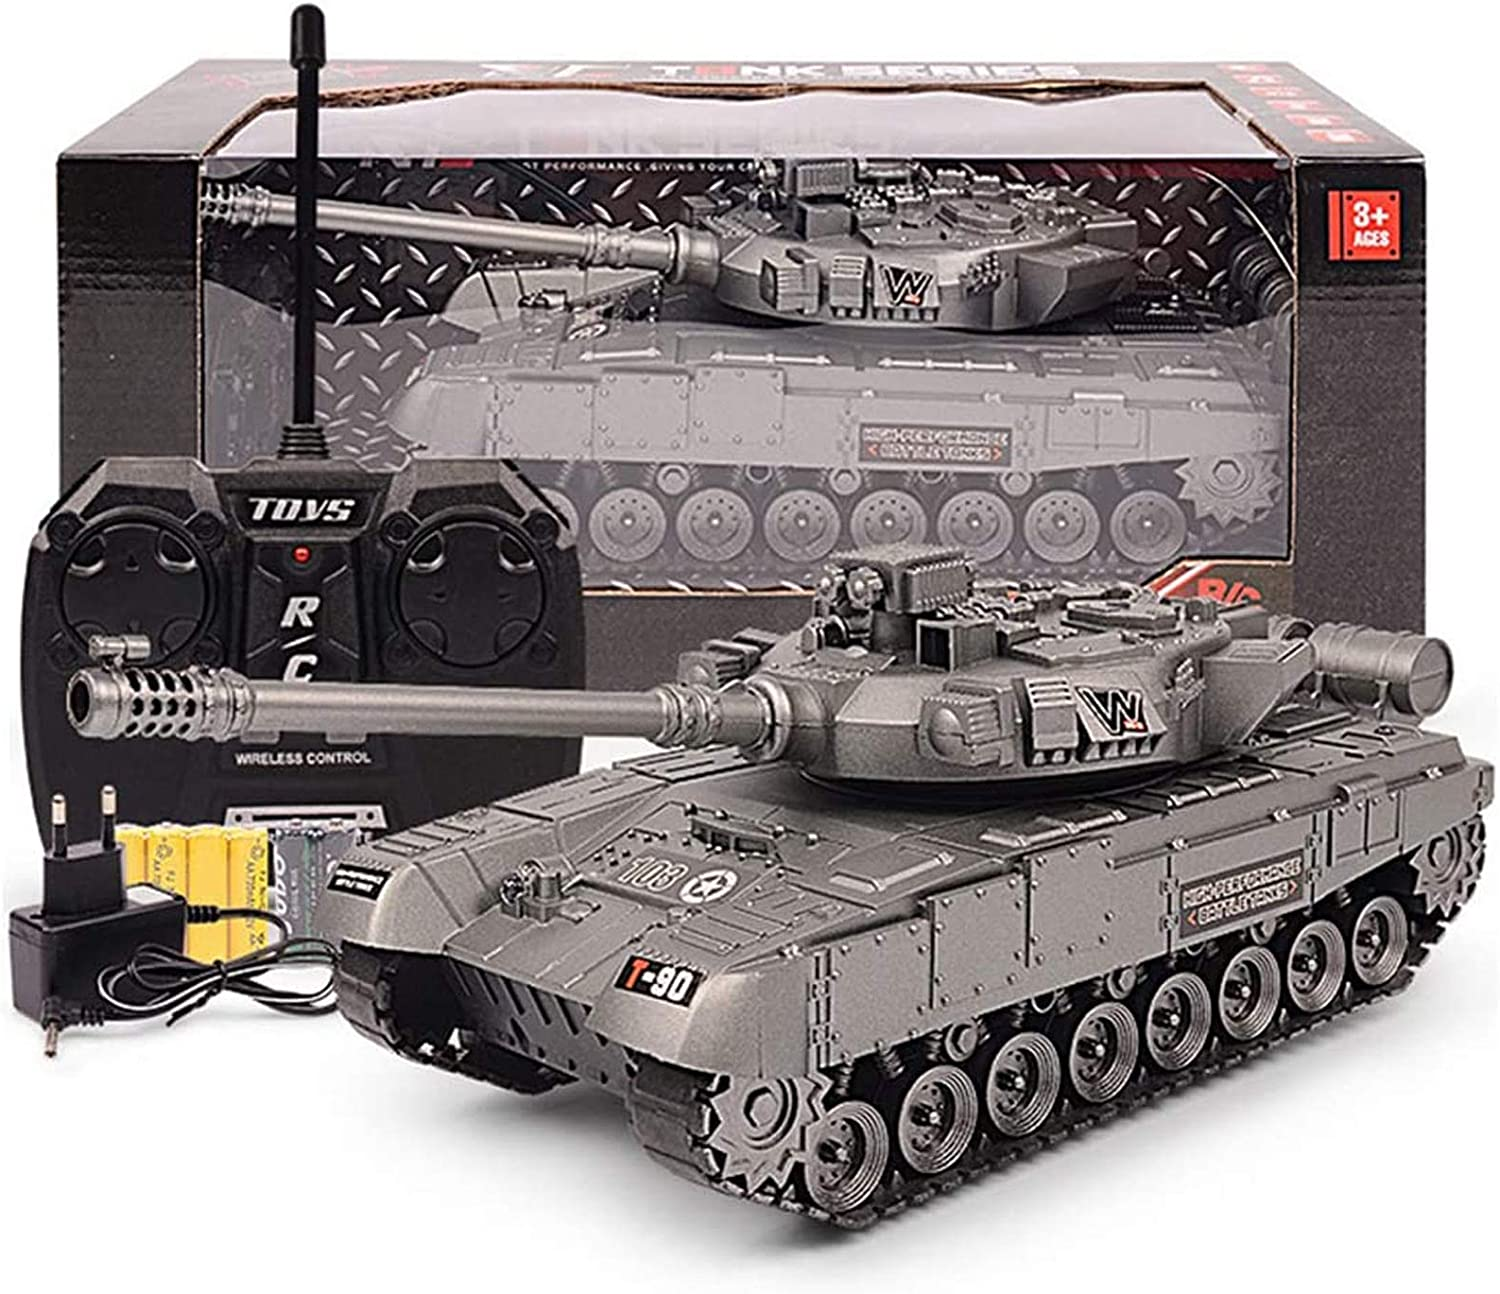 1 24 RC Tank Toys Airsoft Battle Remote Panzer Dedication 2.4Ghz Long-awaited